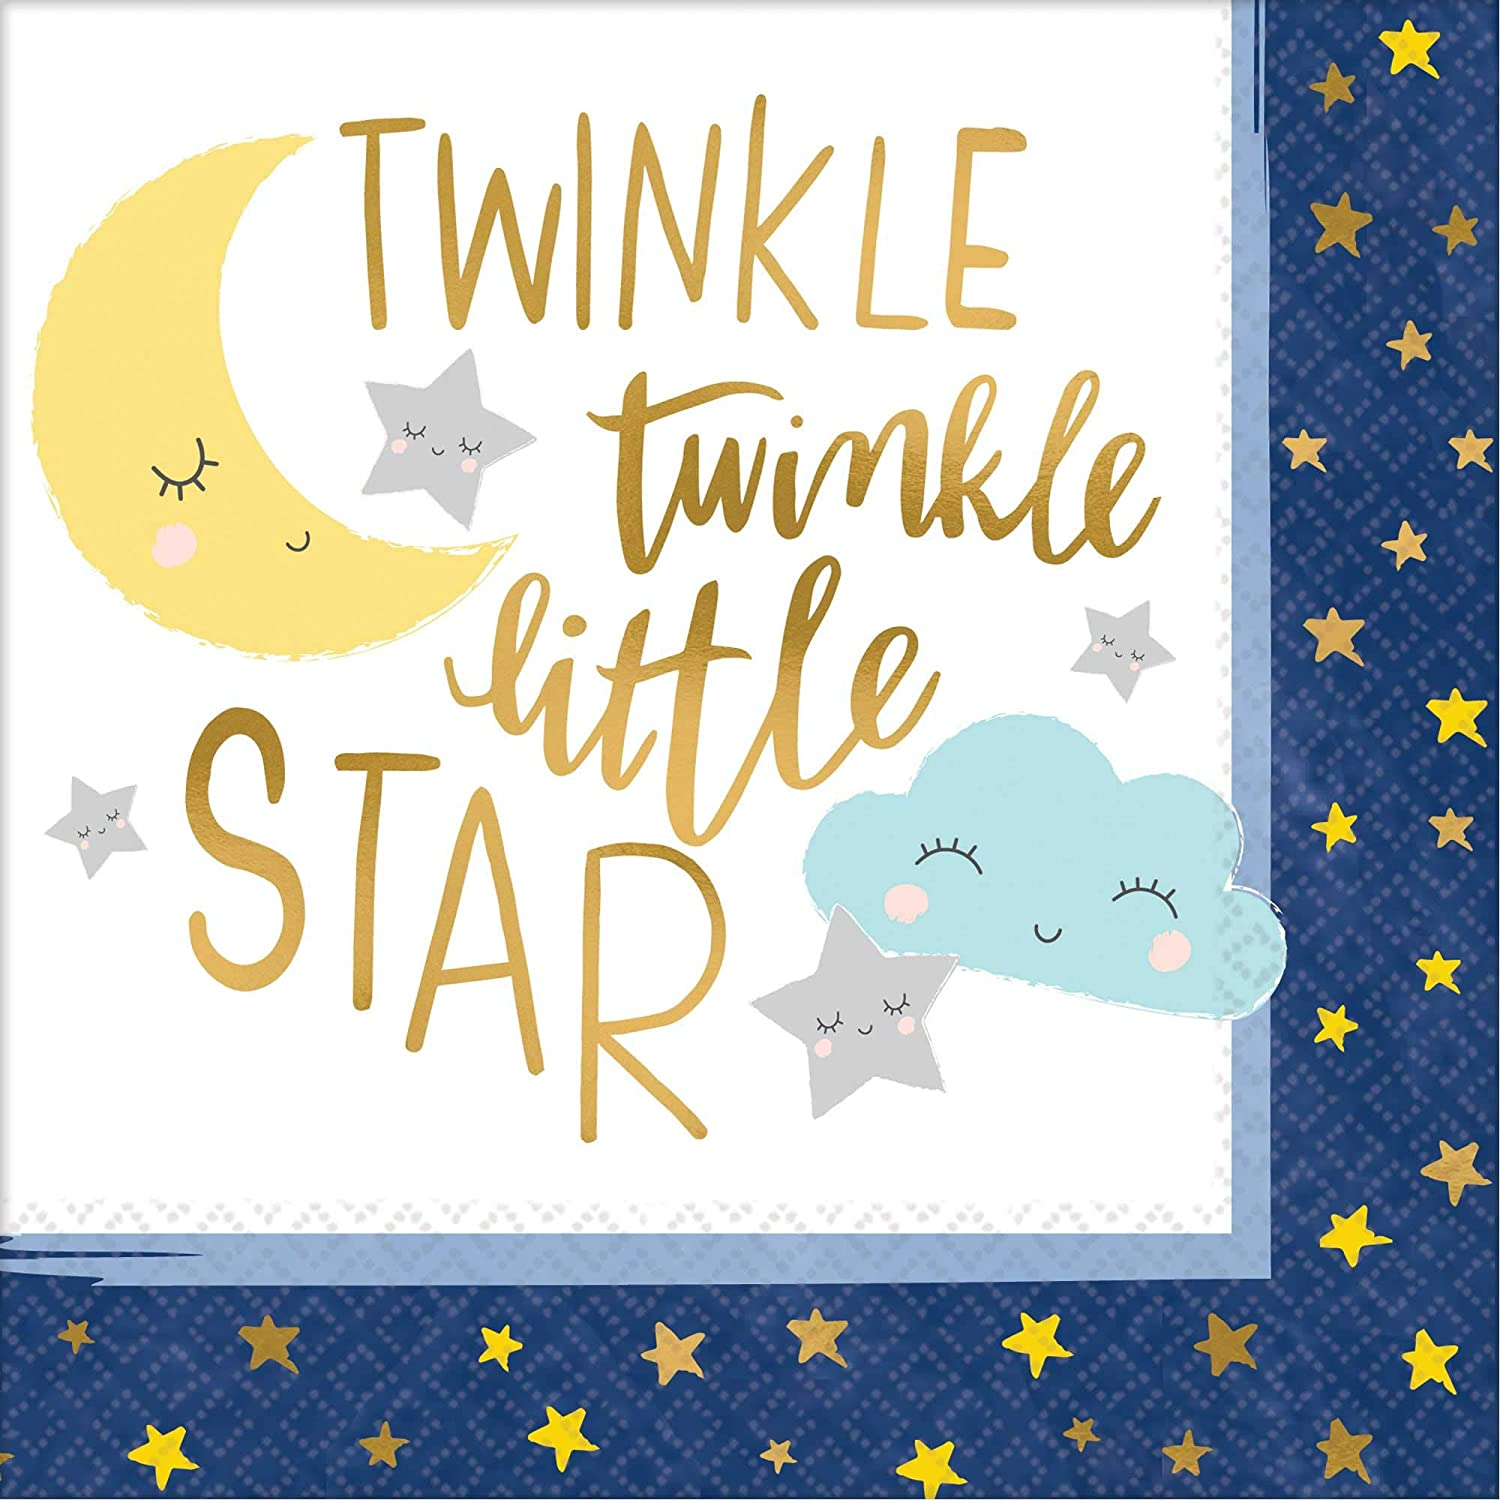 amscan Twinkle Twinkle Little Star Gold Stamp Beverage Napkins-16pc, Blue/White/Multicolor, One Size